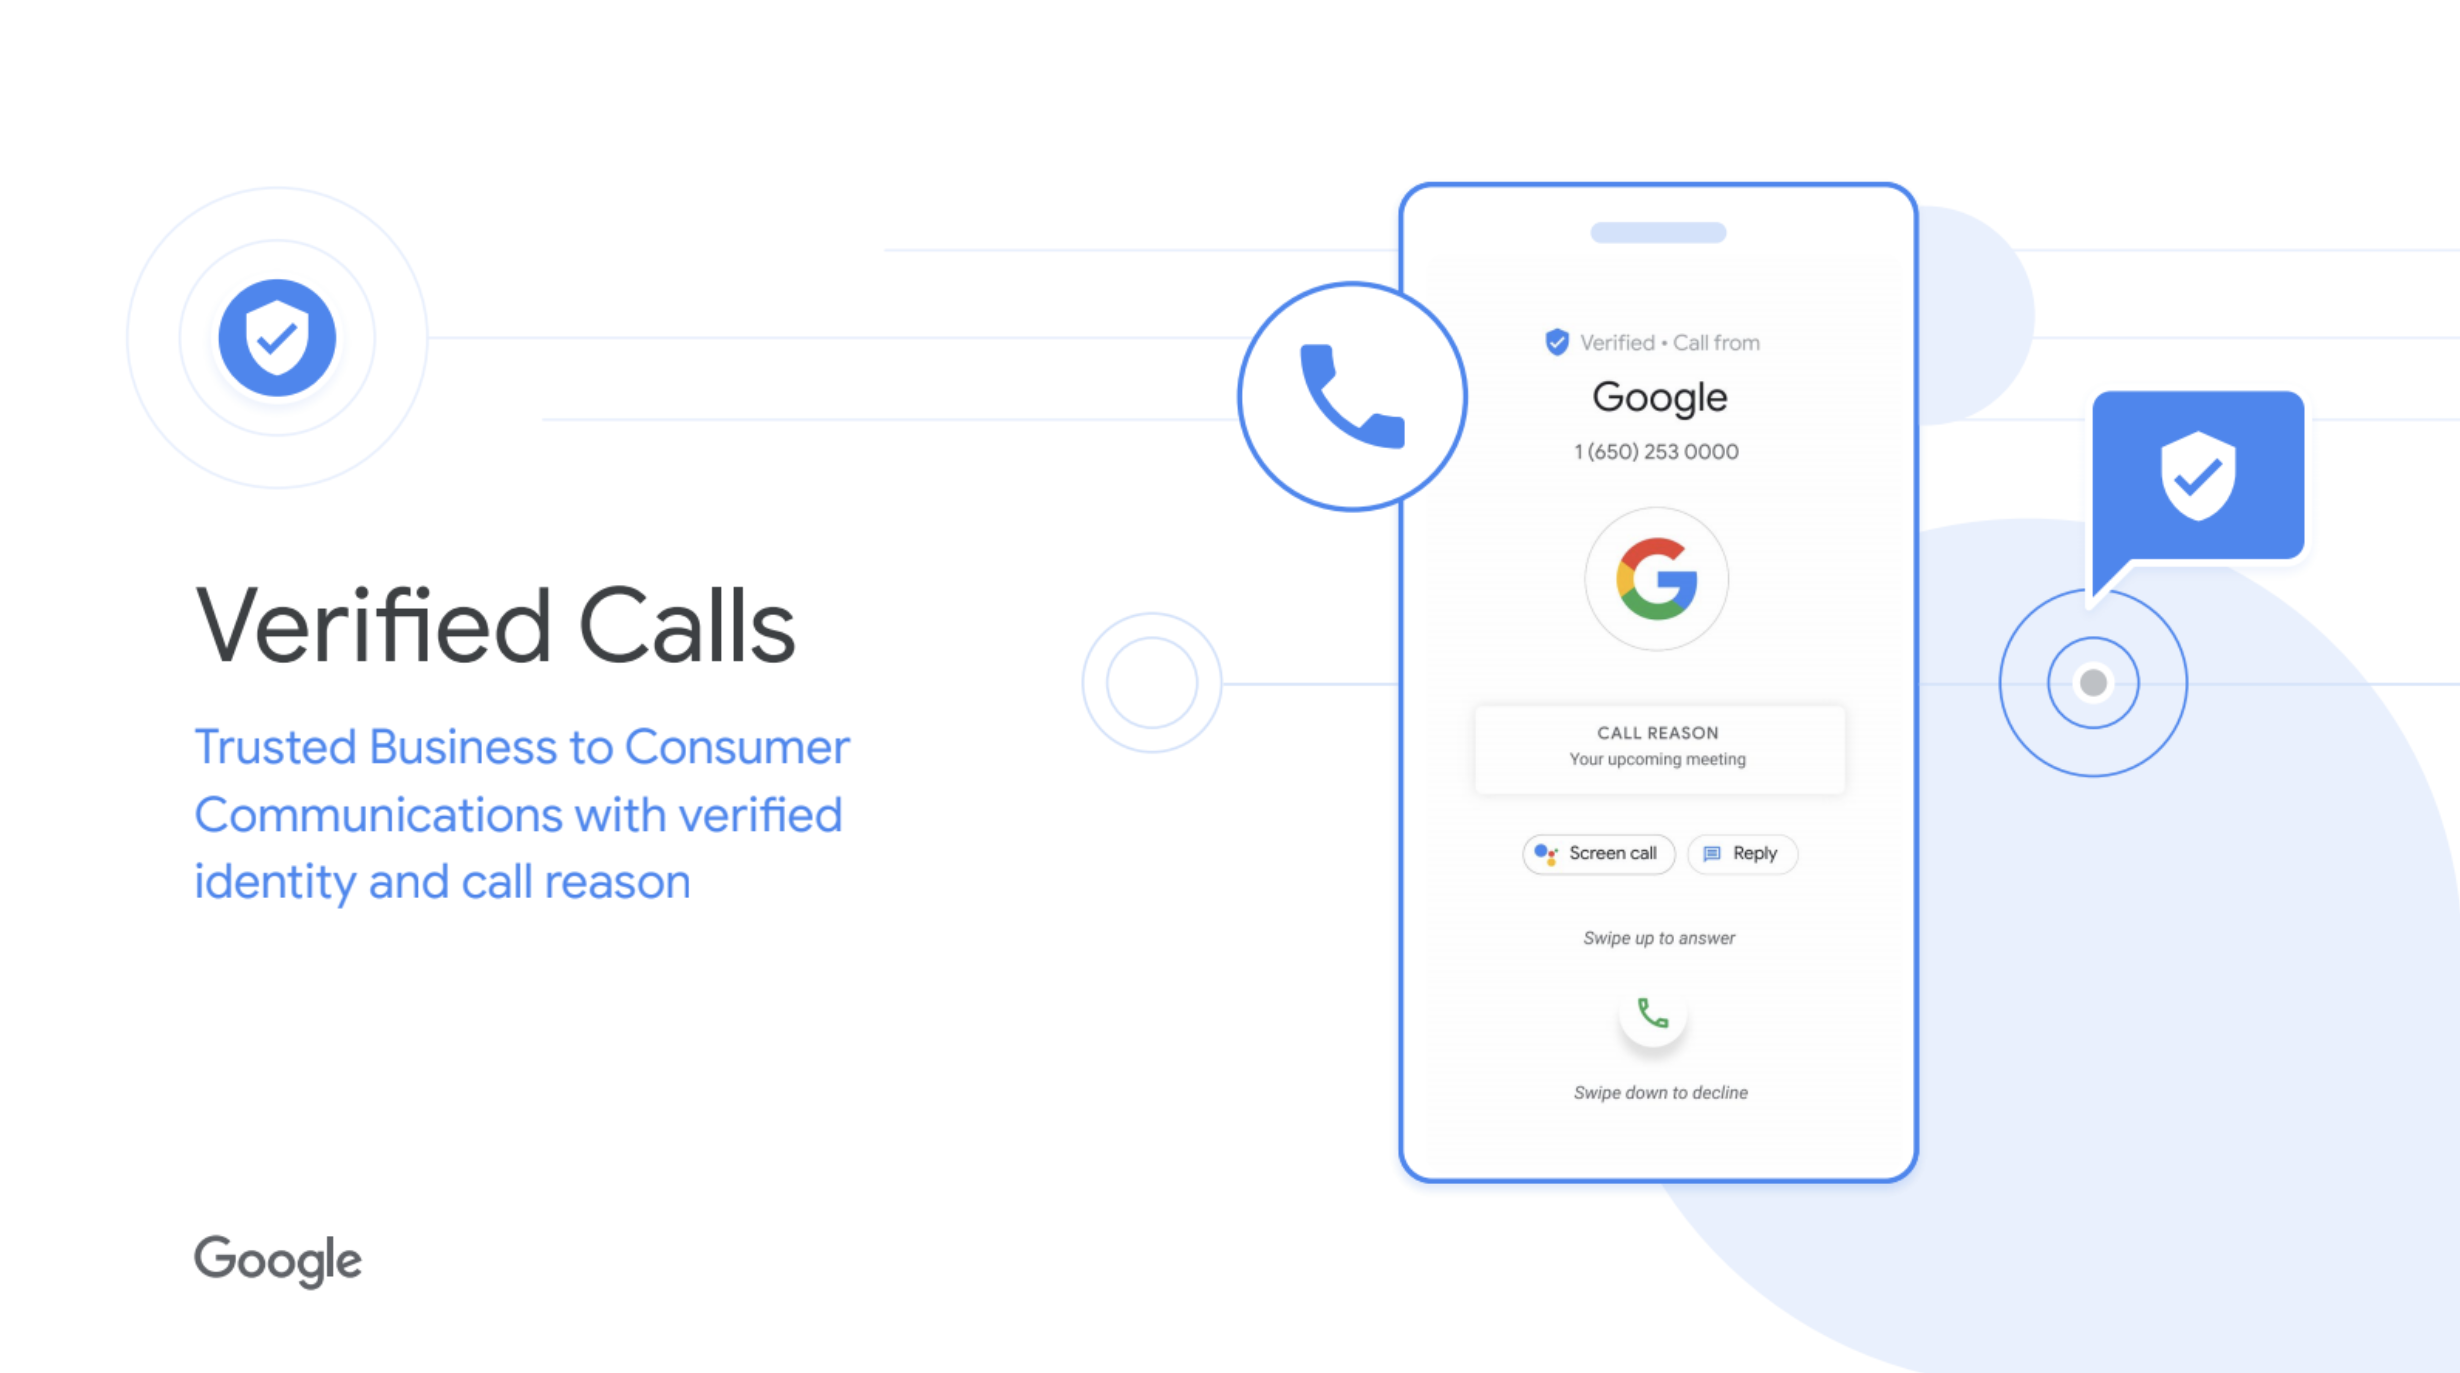 Verified Calls by Google